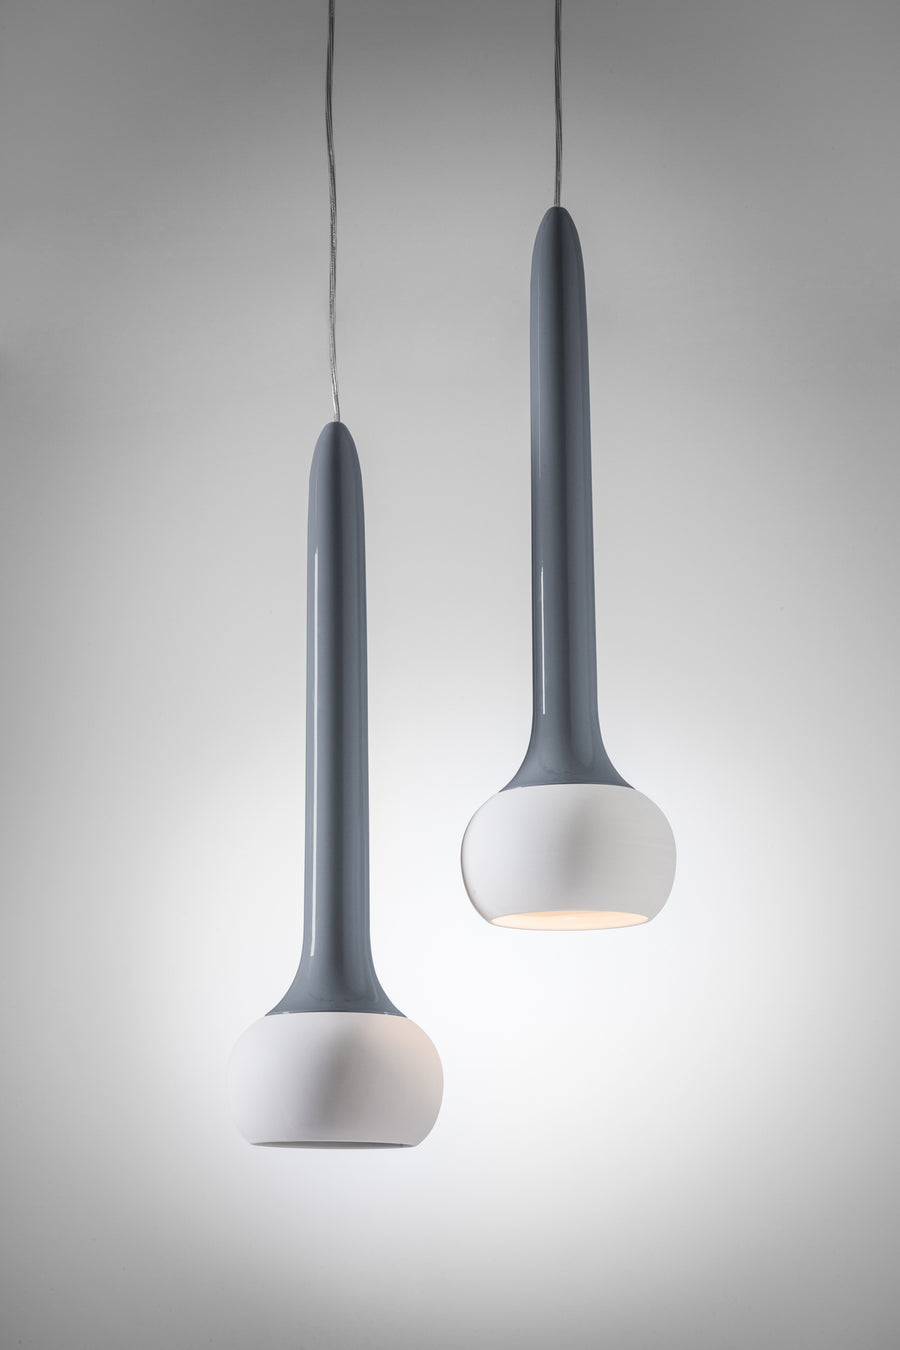 JACHIN Ceramic Suspension Lamp by Giorgio Biscaro for Bosa - DUPLEX DESIGN